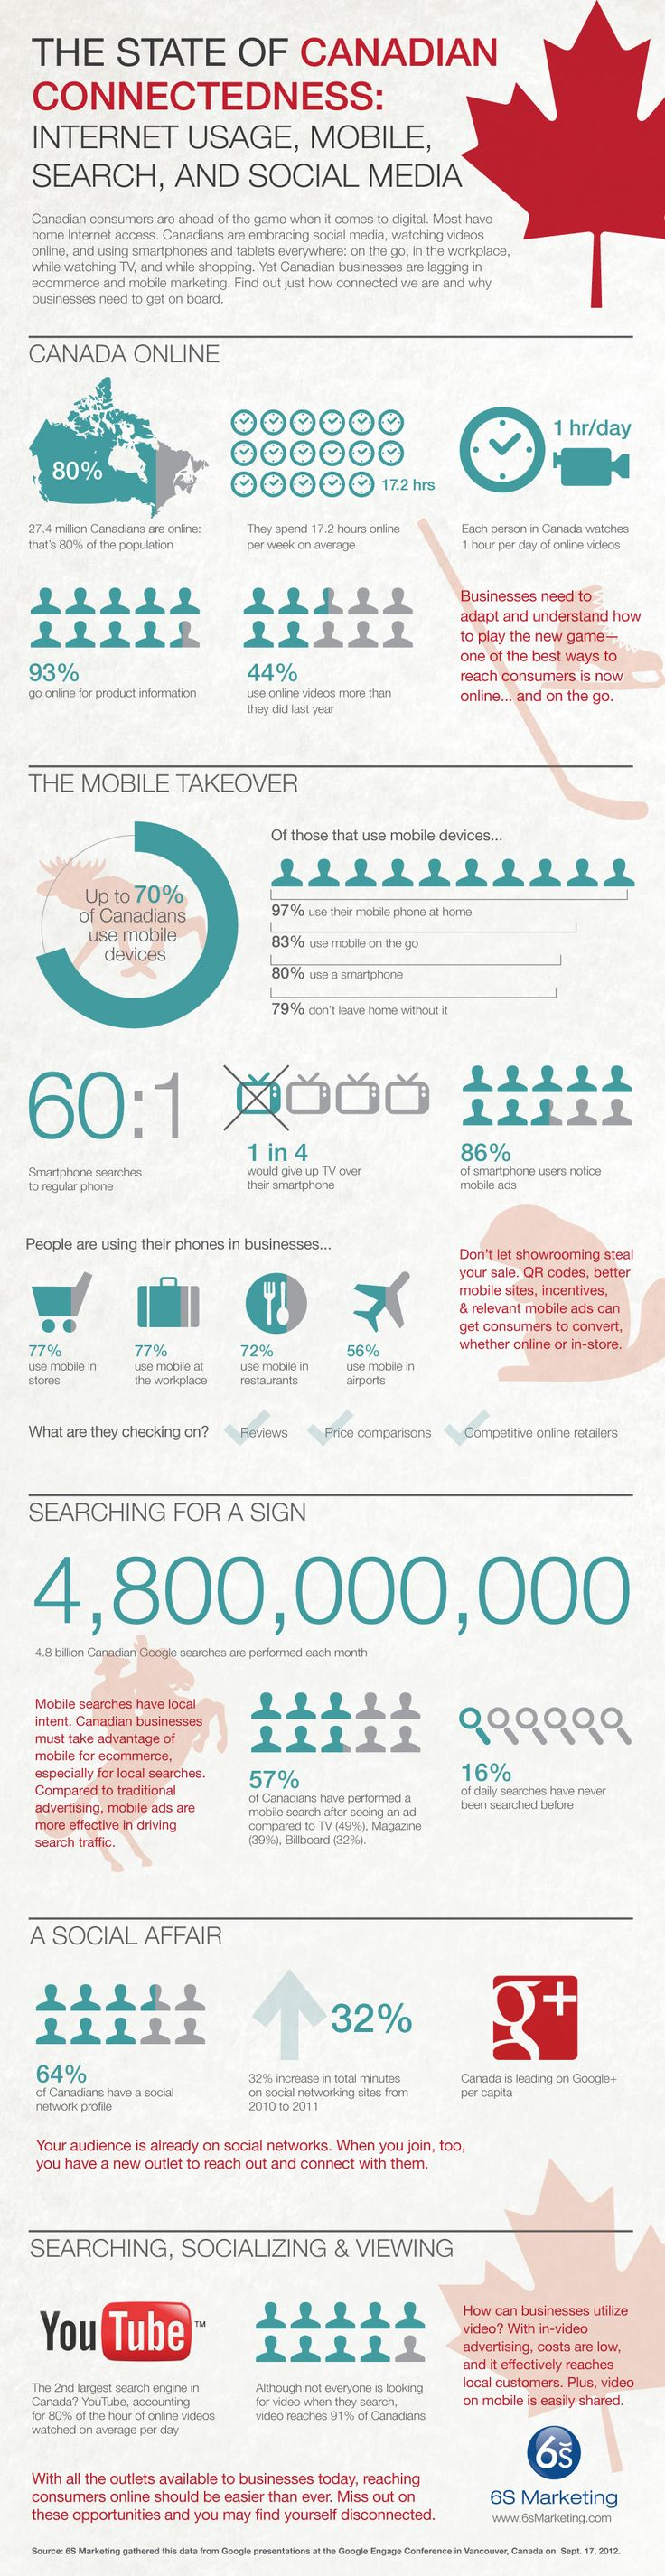 Detailed Canadian Internet statistics in search engine usage, mobile and social media. Statistics provided by Google.